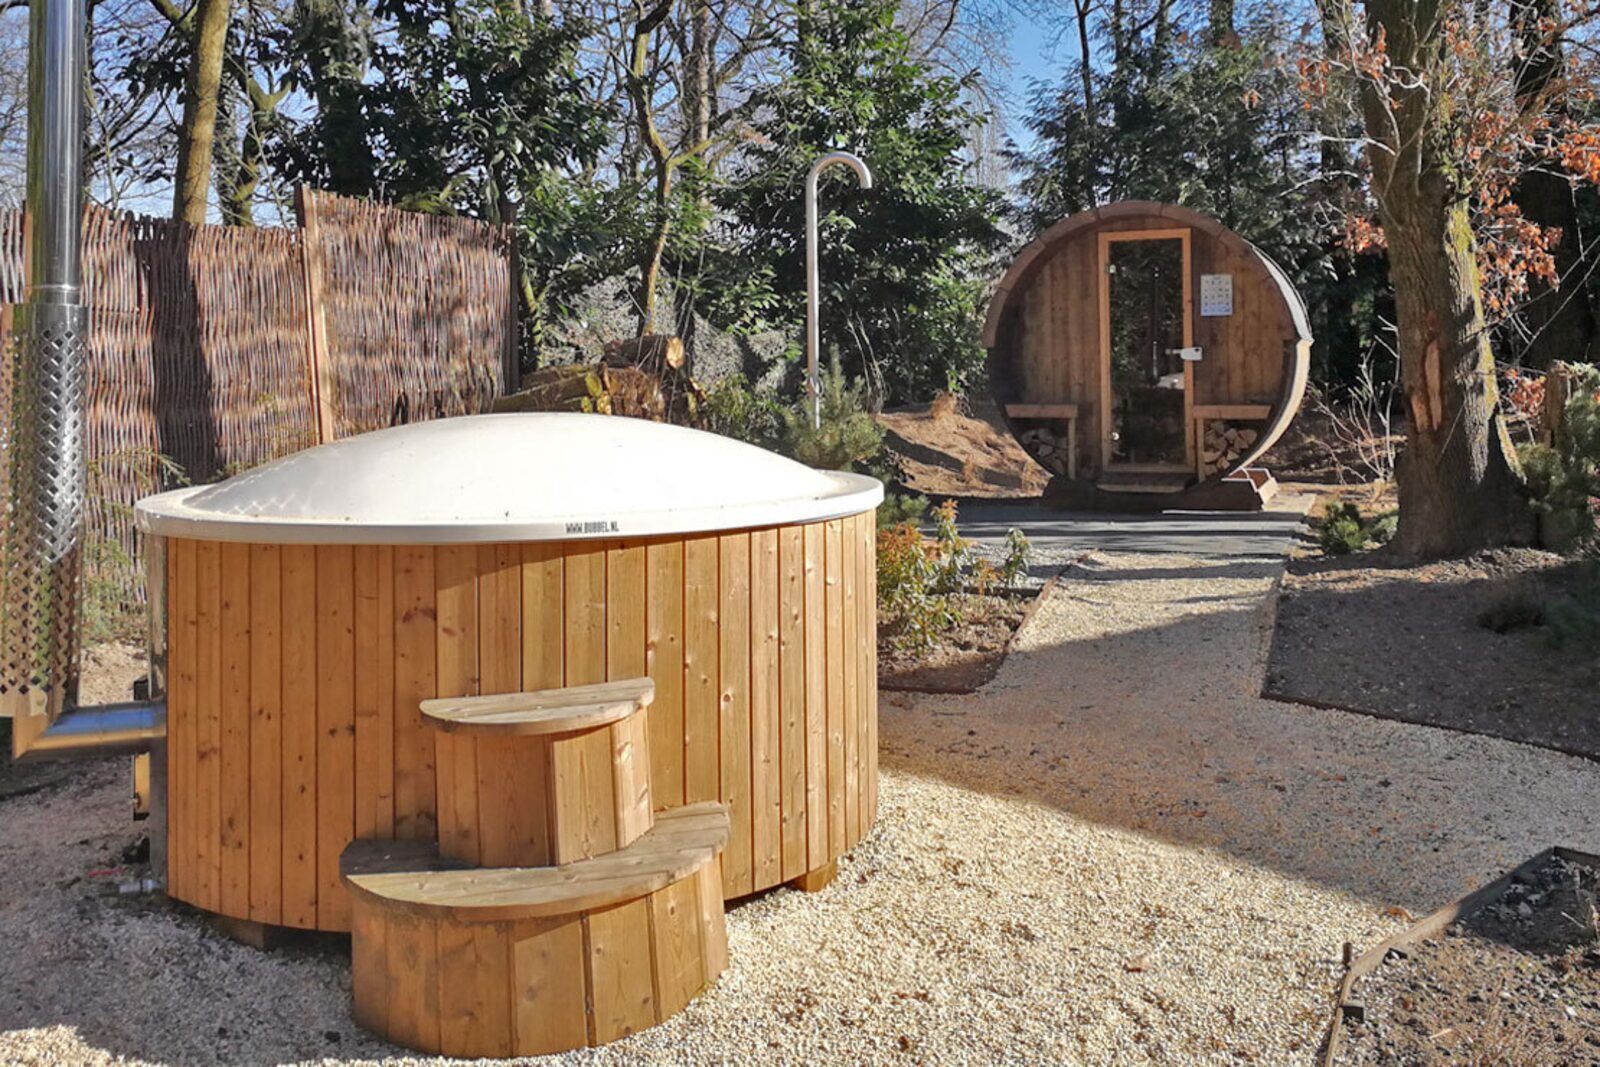 Use of Sauna and Hot Tub Forest Bungalow Wellness